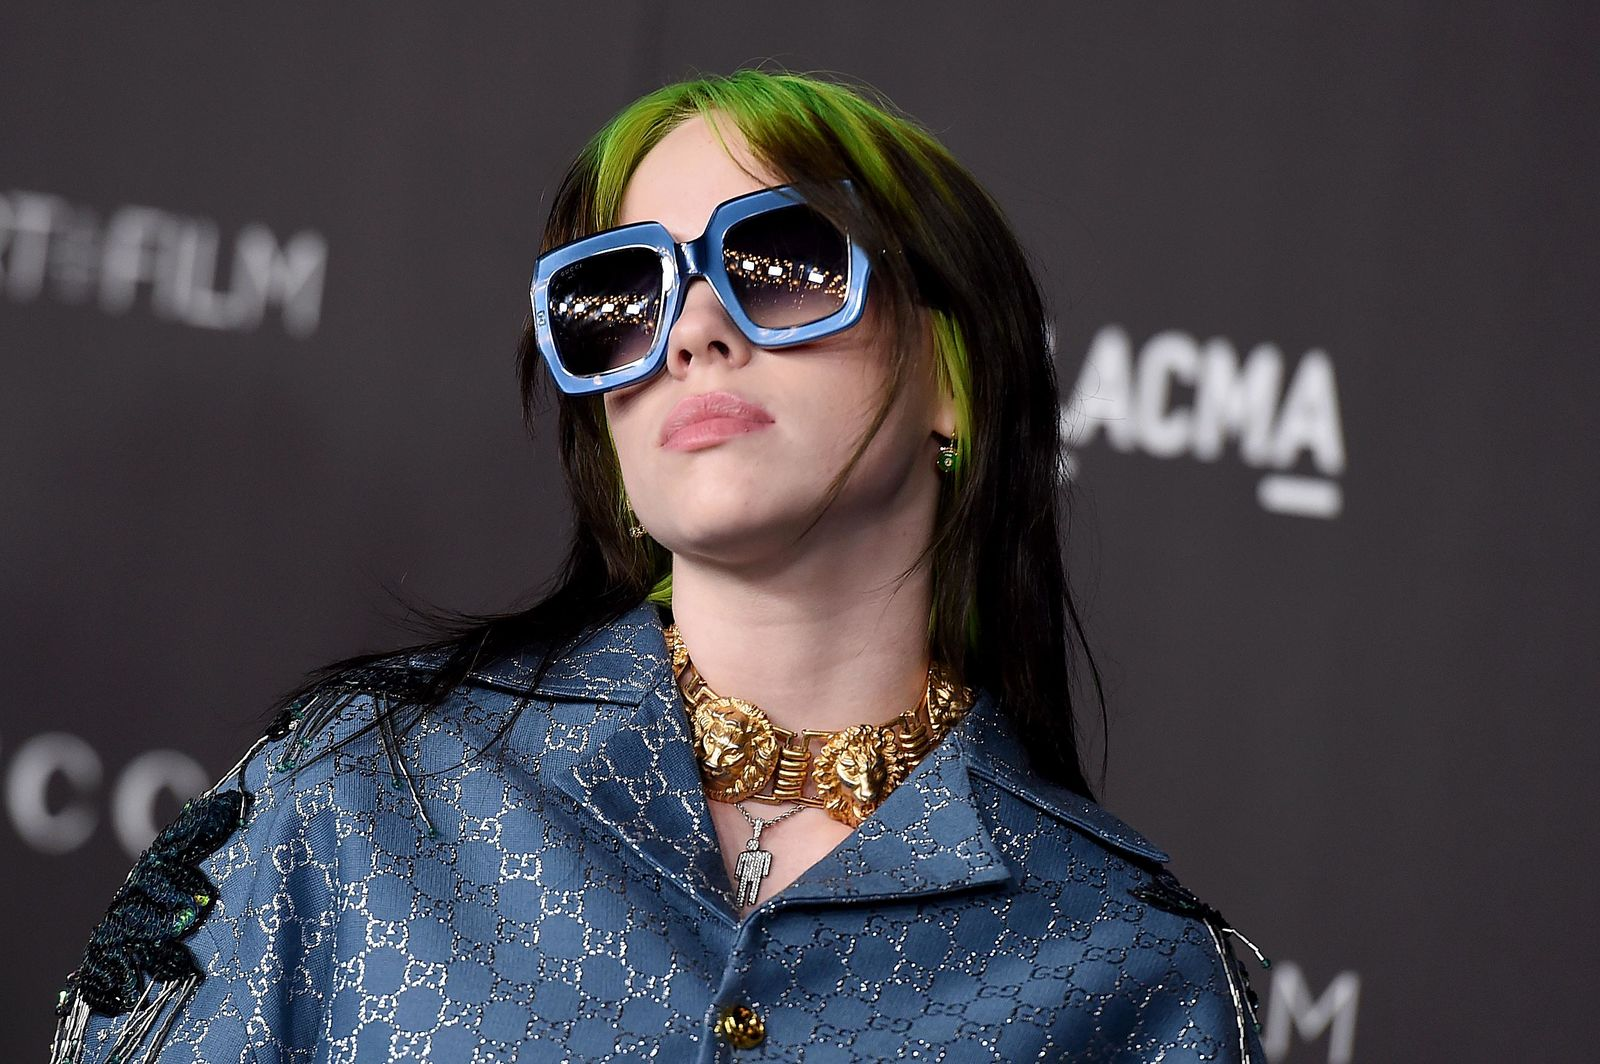 FILE - This Nov. 2, 2019 file photo shows Billie Eilish at the 2019 LACMA Art and Film Gala in Los Angeles. (Photo by Jordan Strauss/Invision/AP, File)